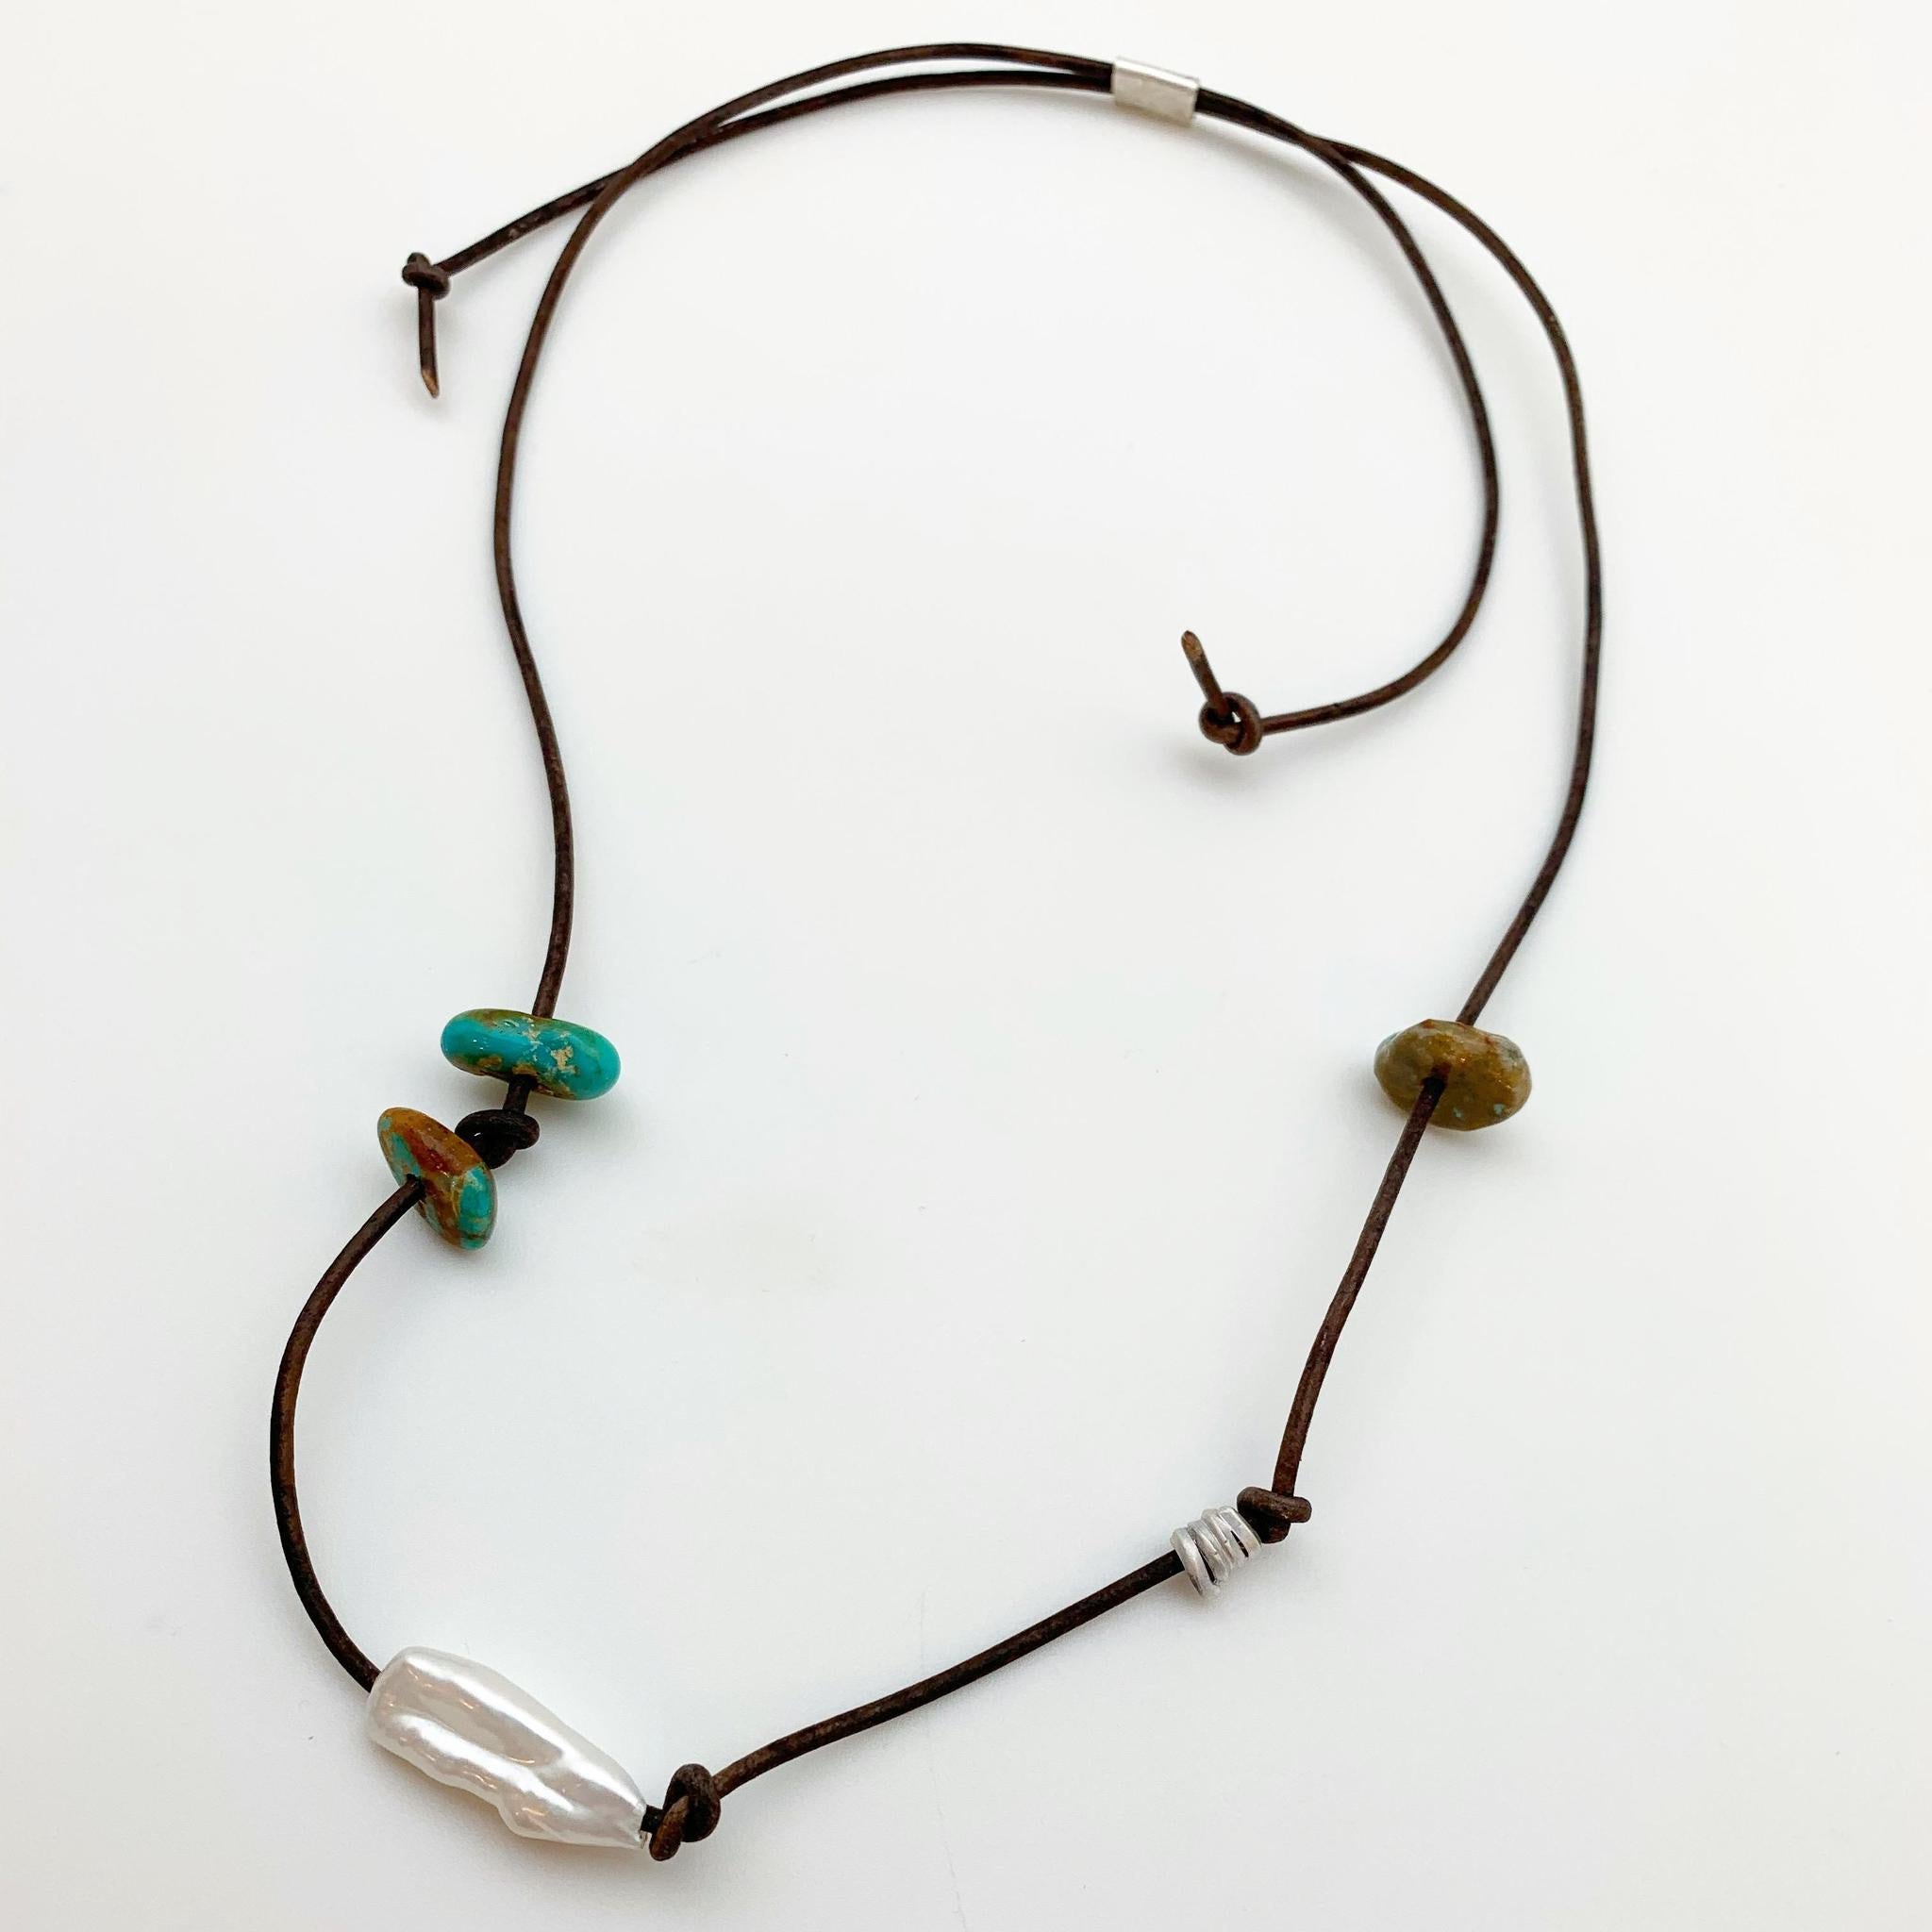 Necklace - Mixed Beads on Leather